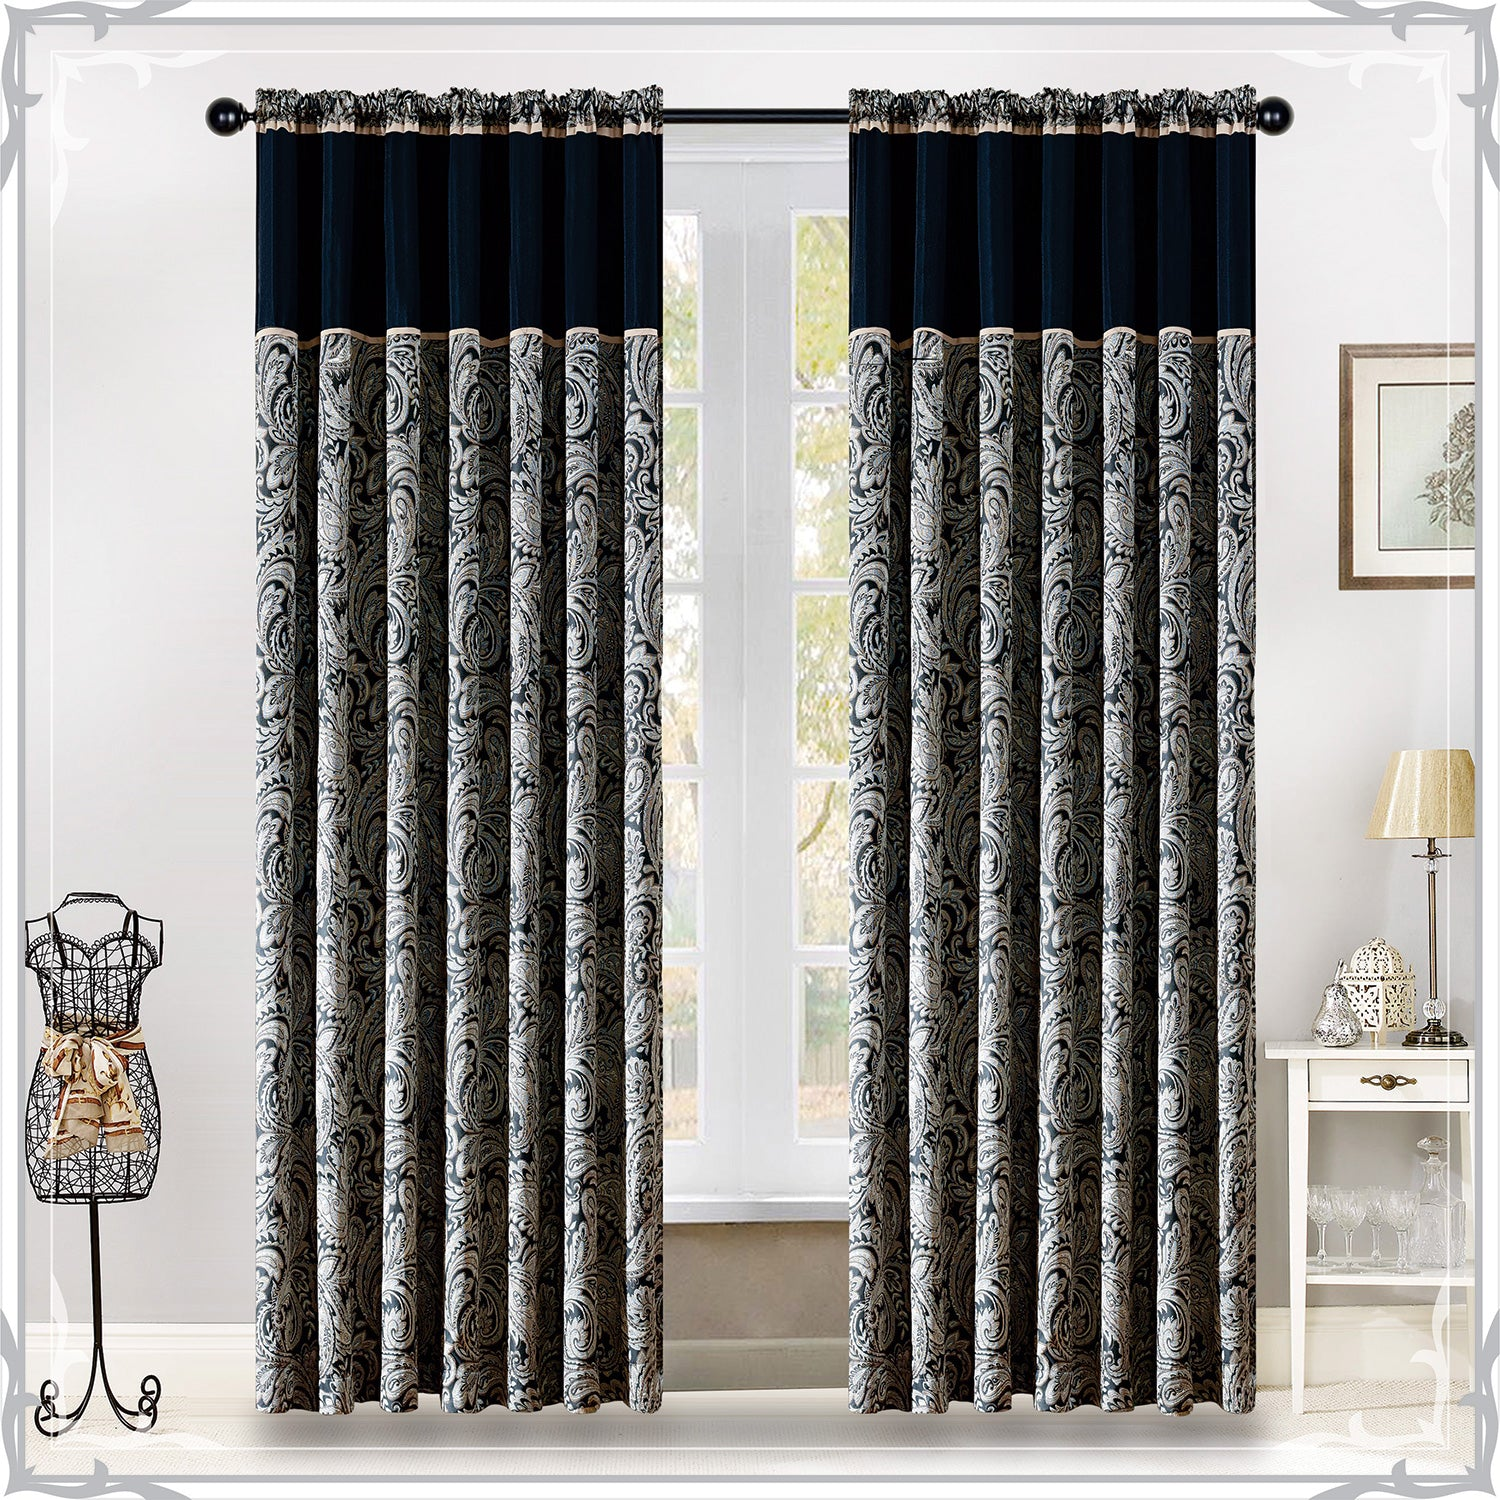 Black Cream Pencil Pleat Ready Made Paisley Curtains Buy Now